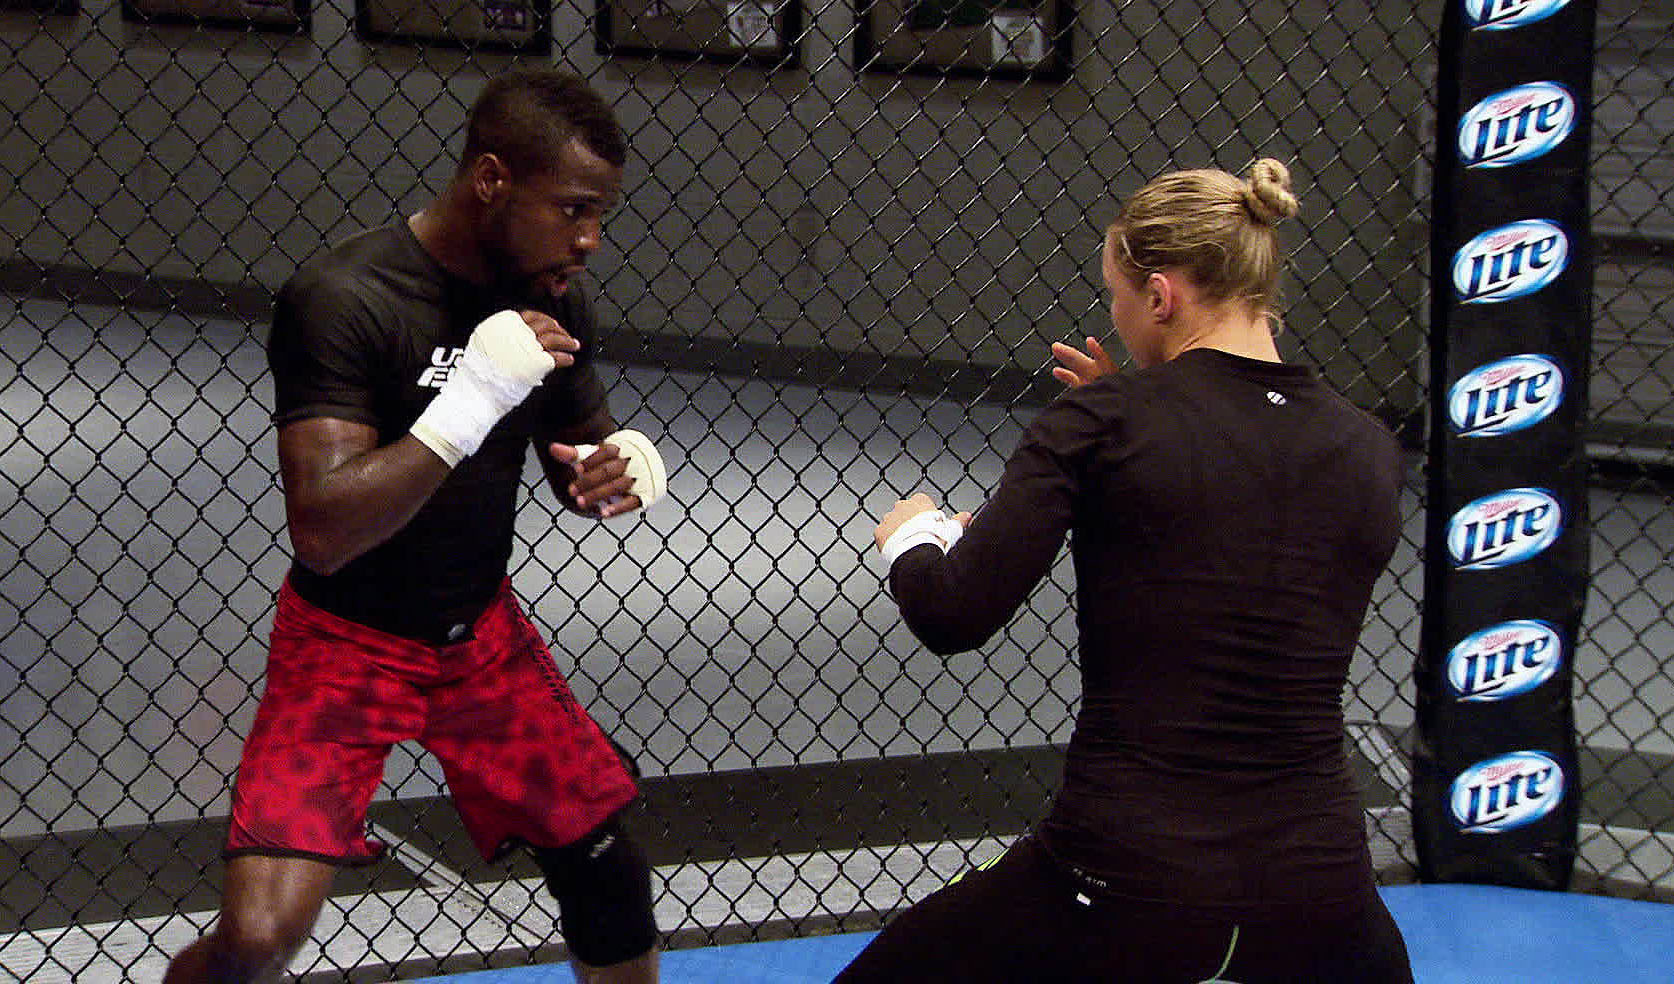 Beal trains with coach Rousey